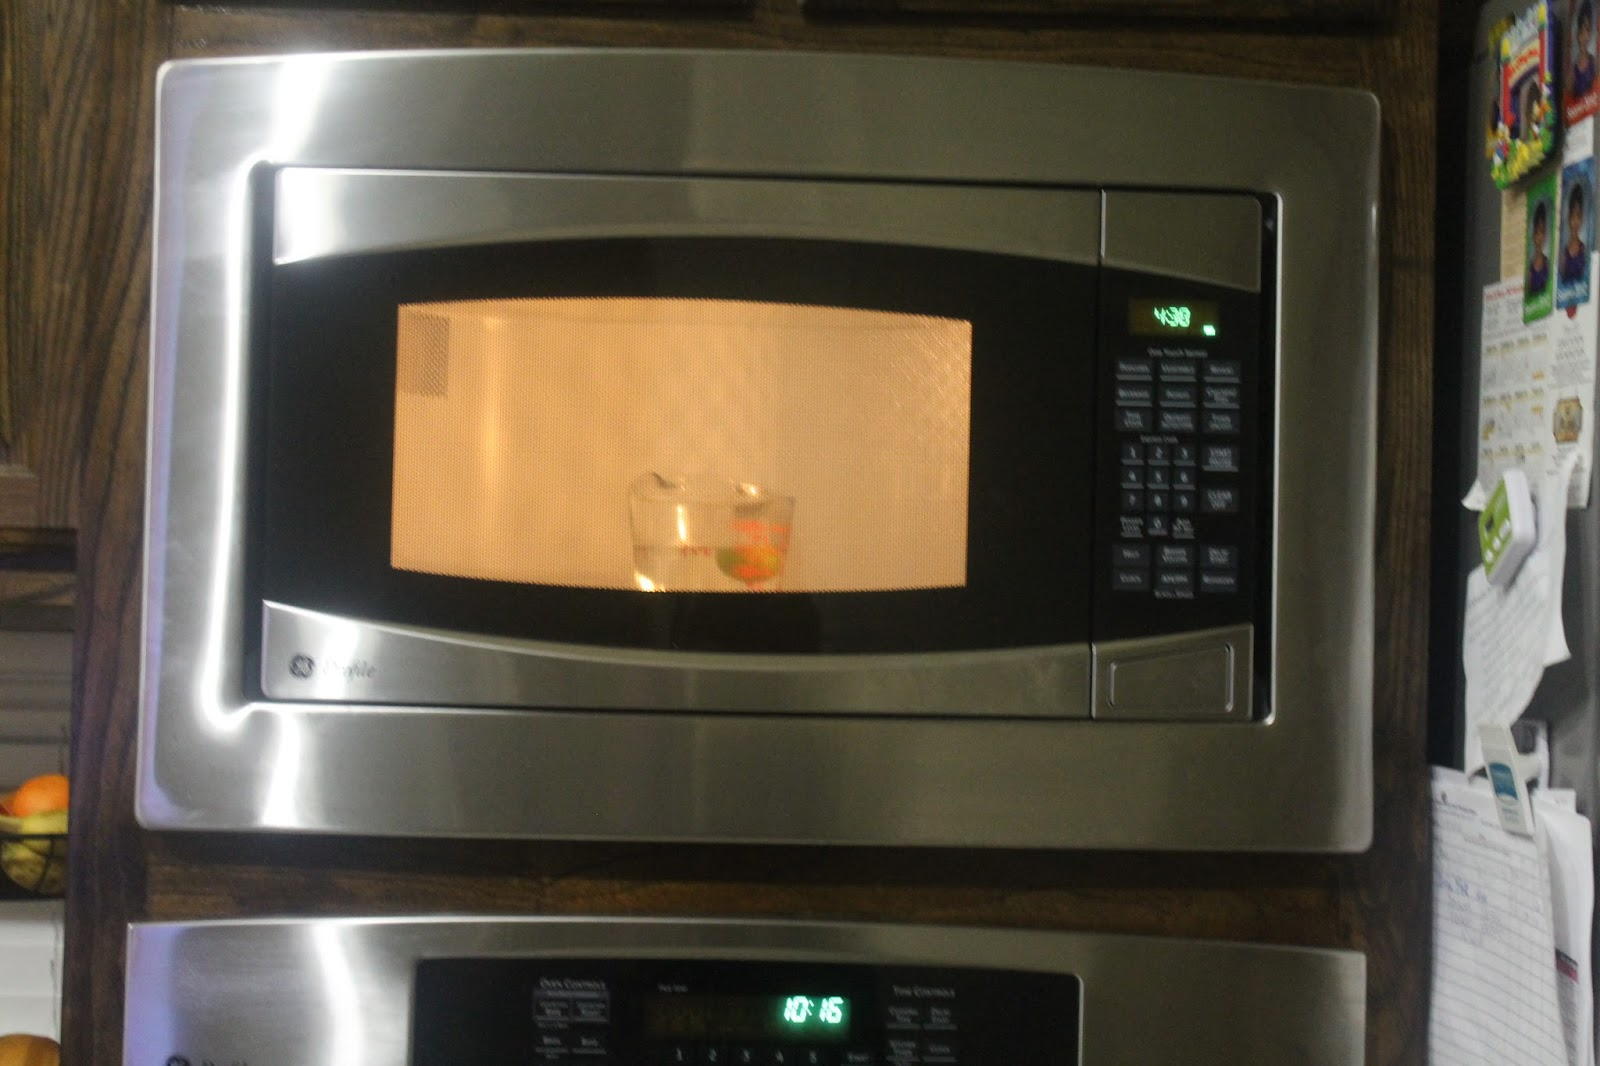 Vineelasiva tip of the day 7 how to clean microwave oven - Clean oven tray less minute ...